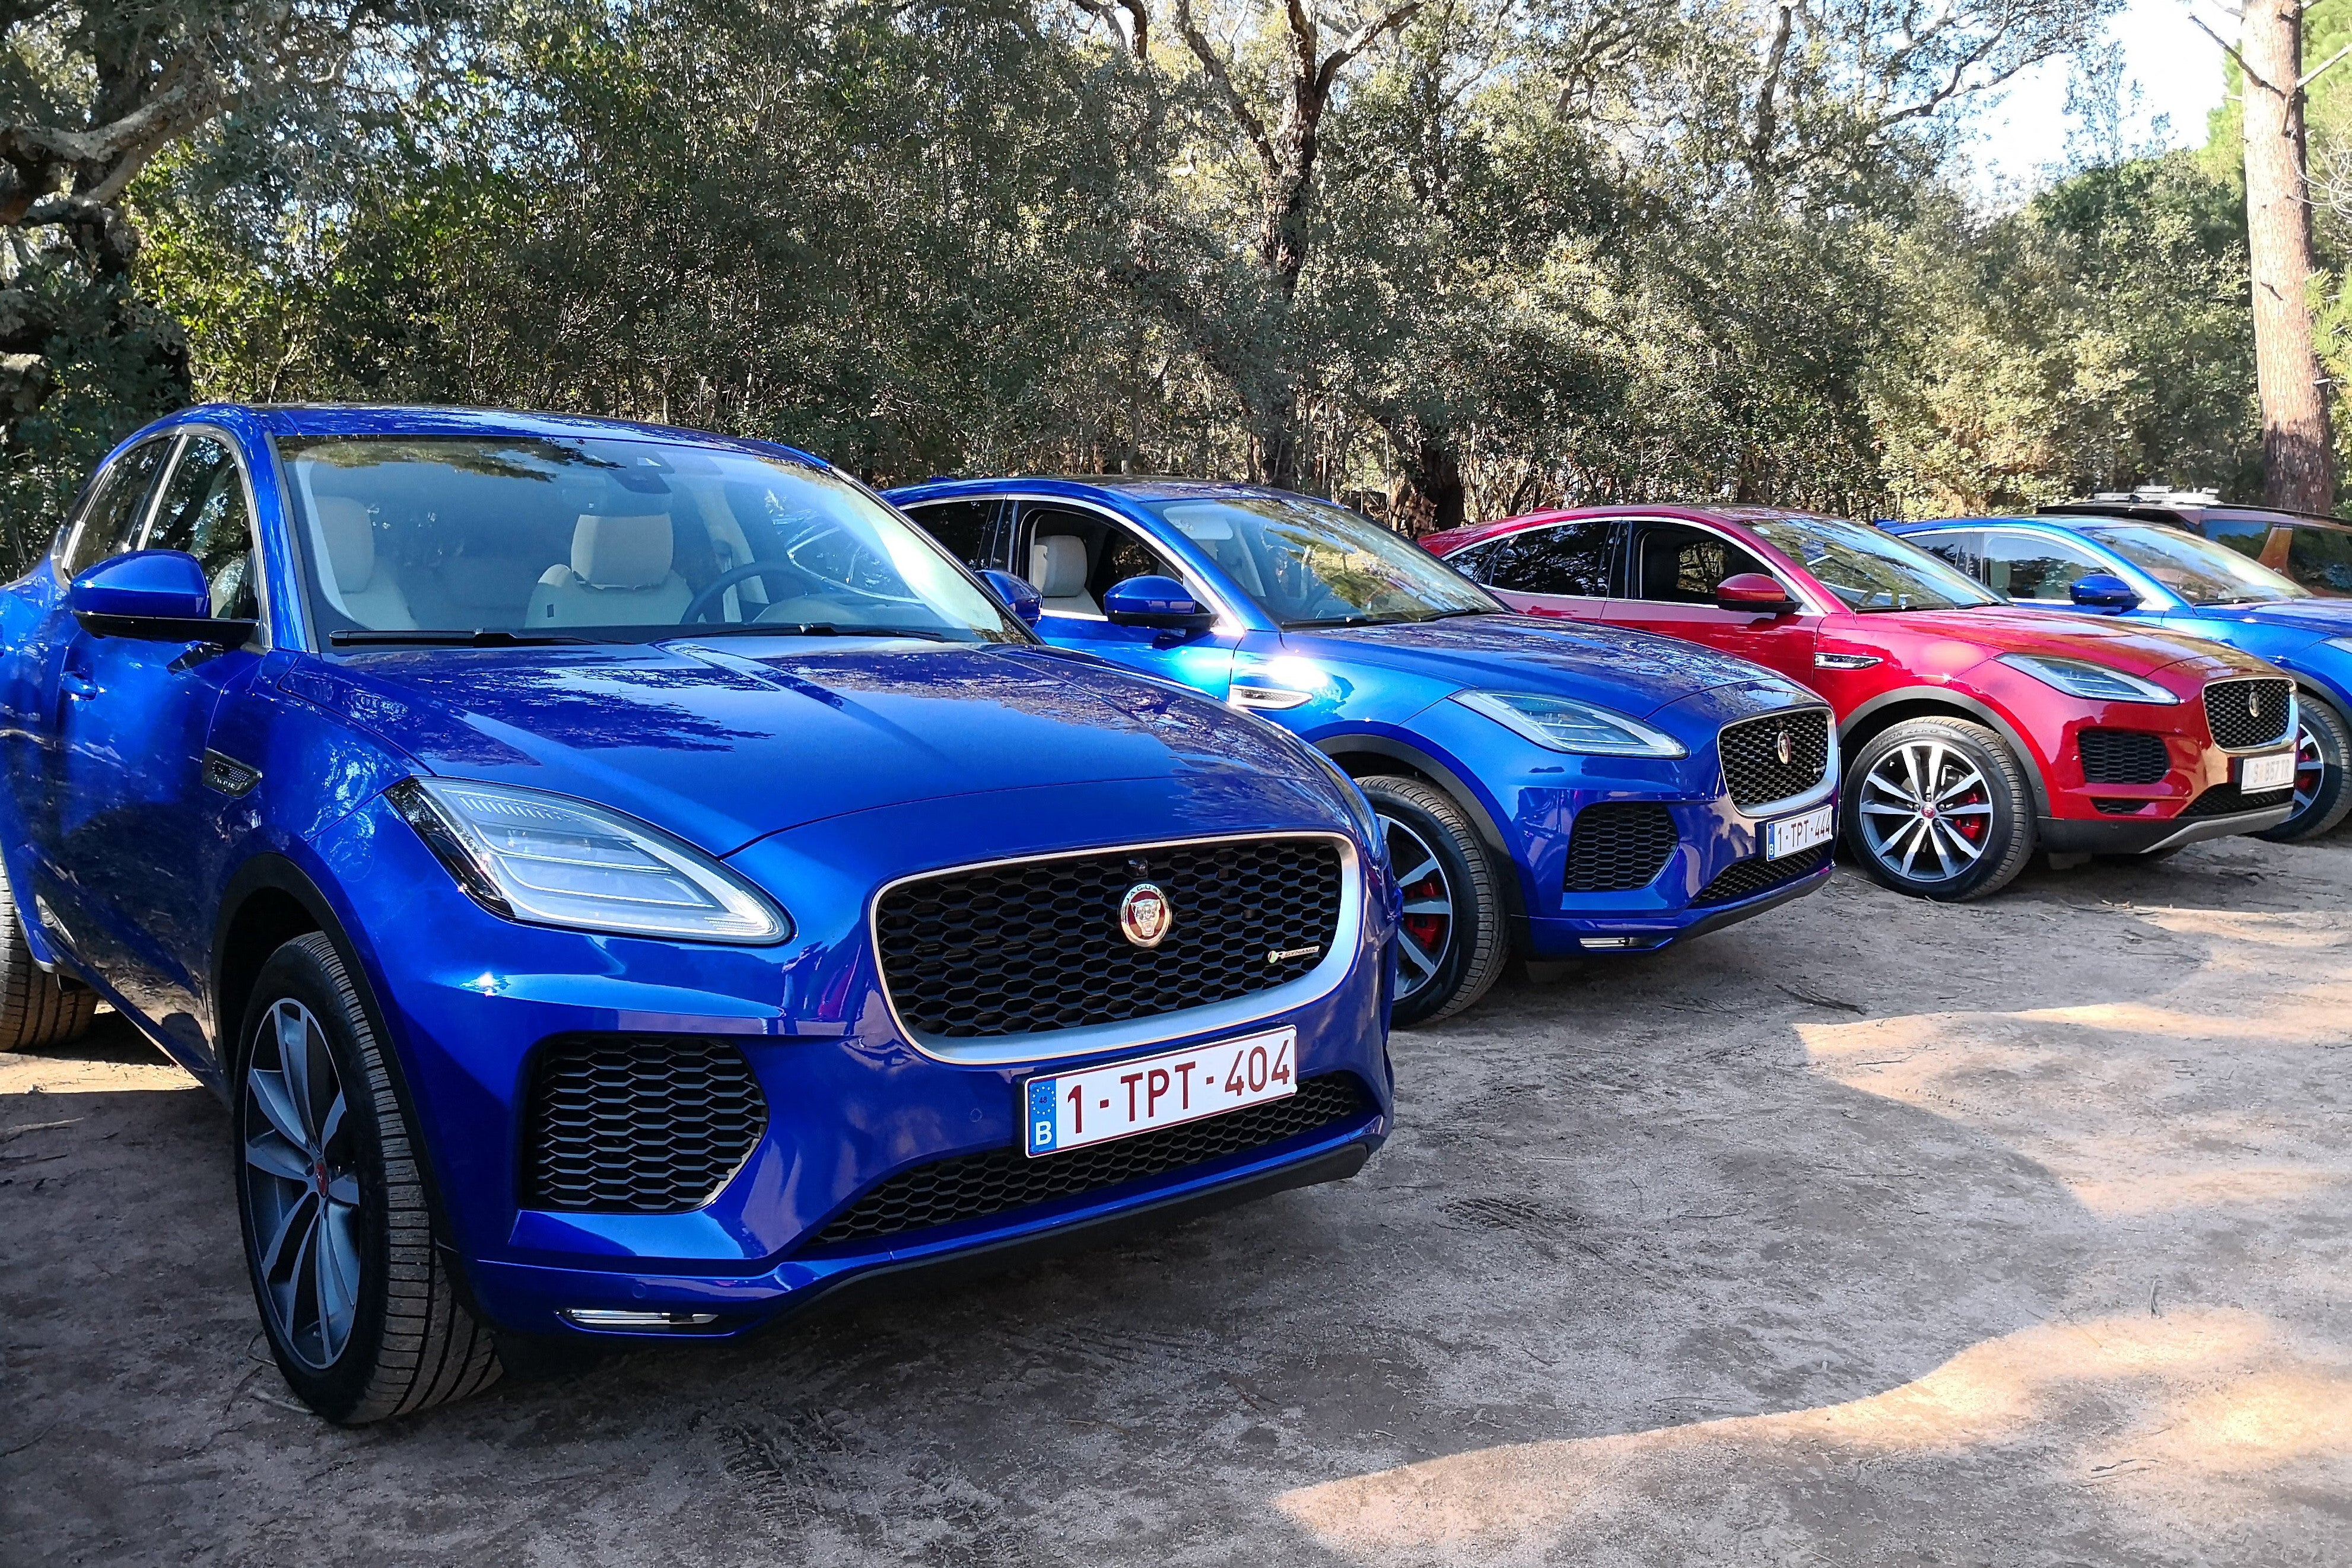 nine much than however tonnes be in it as road fat compact well newest jag tracks its jaguar heftier s pace brand weighing classed and just the at new suv cat is a e such may about why jags